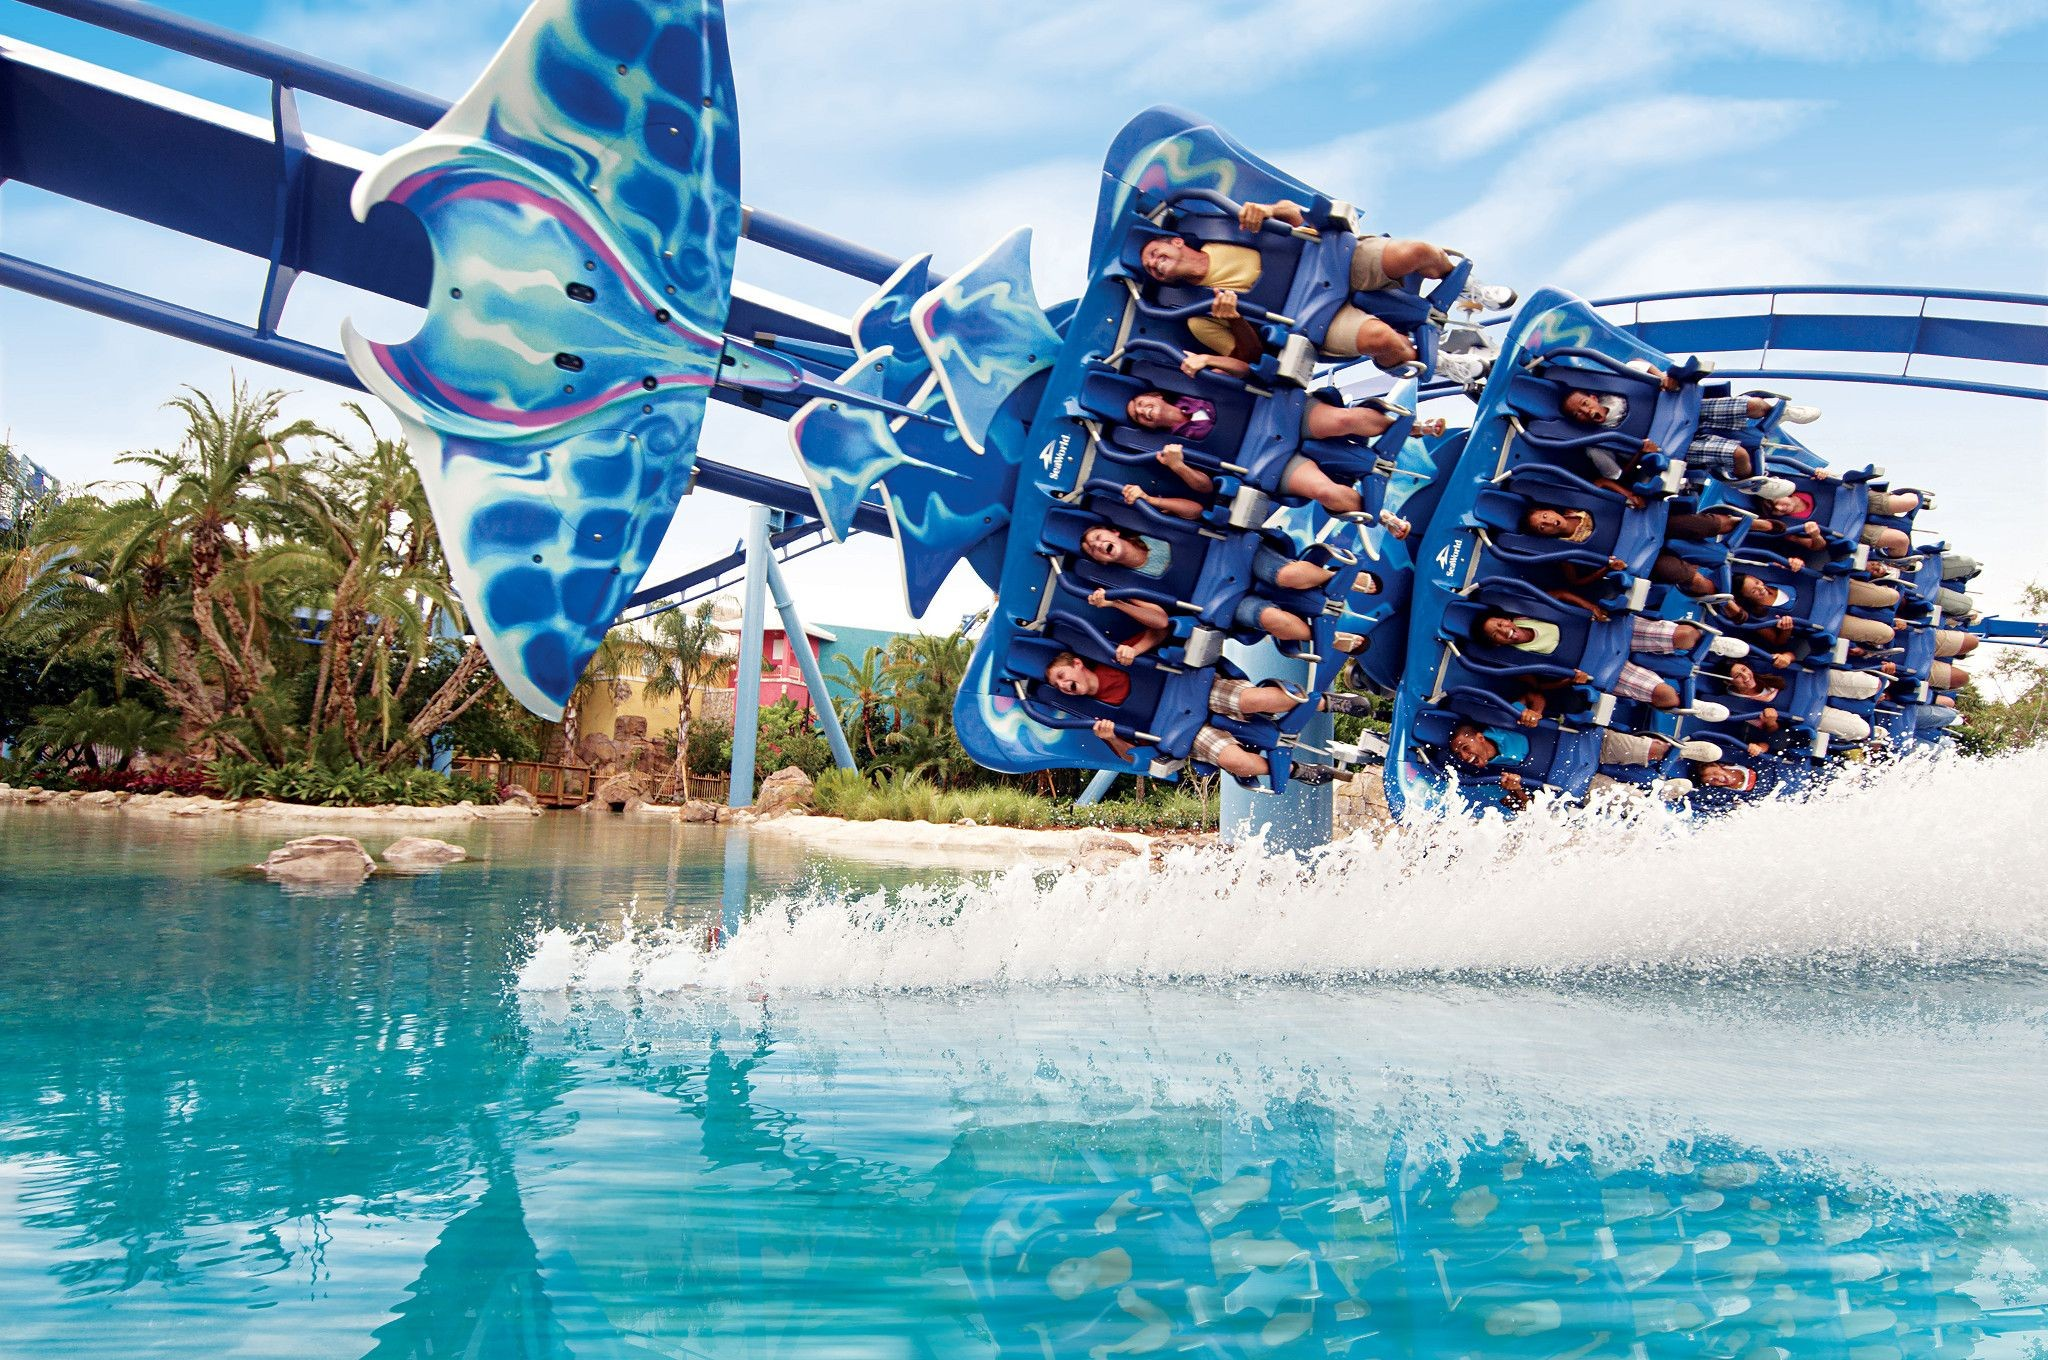 The future of Florida's amusement parks is about to get really complicated, thanks to SeaWorld, Six Flags and an onslaught of private equity firms